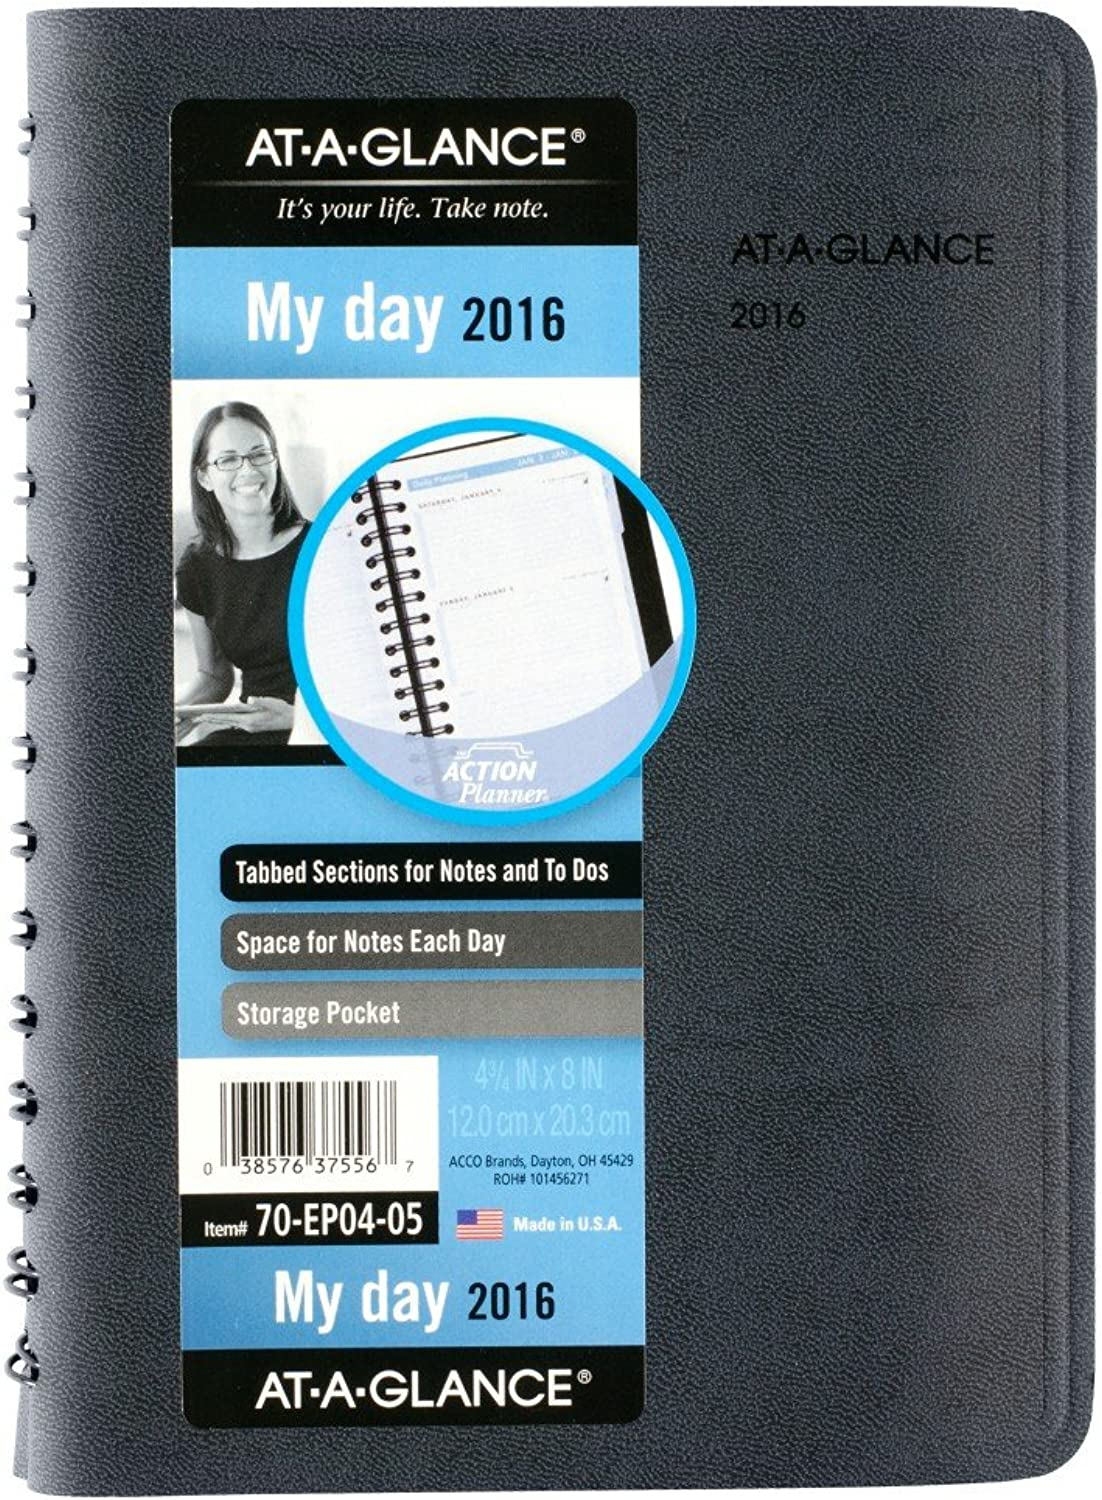 AT-A-GLANCE Daily Appointment Book   Planner 2016, The Action Planner, 4.75 x 8 Inches, schwarz (70-EP04-05) by At-A-Glance B00WUUUWJ2   Sale Deutschland